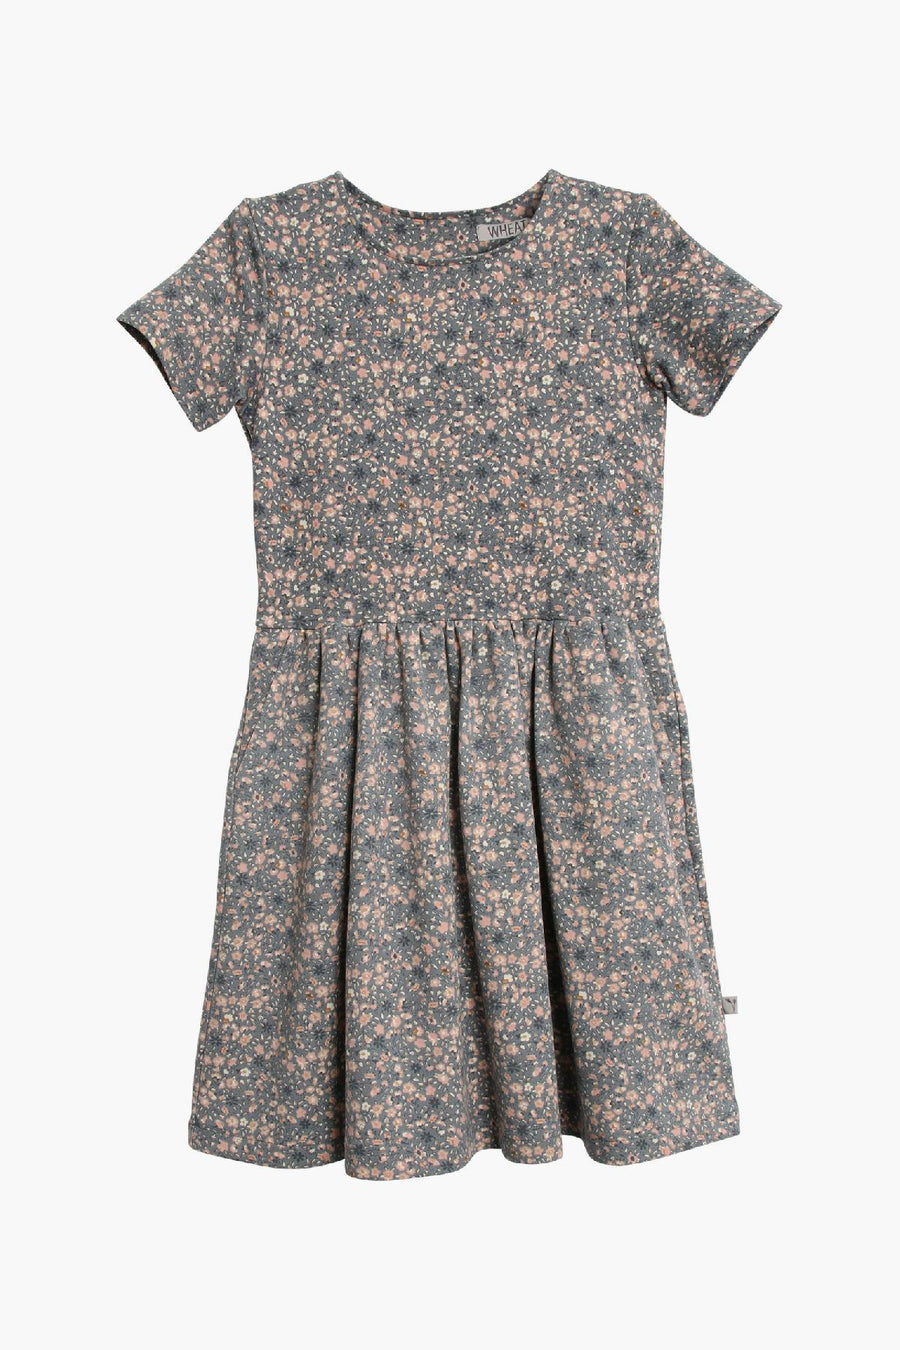 Wheat Augusta Girls Dress